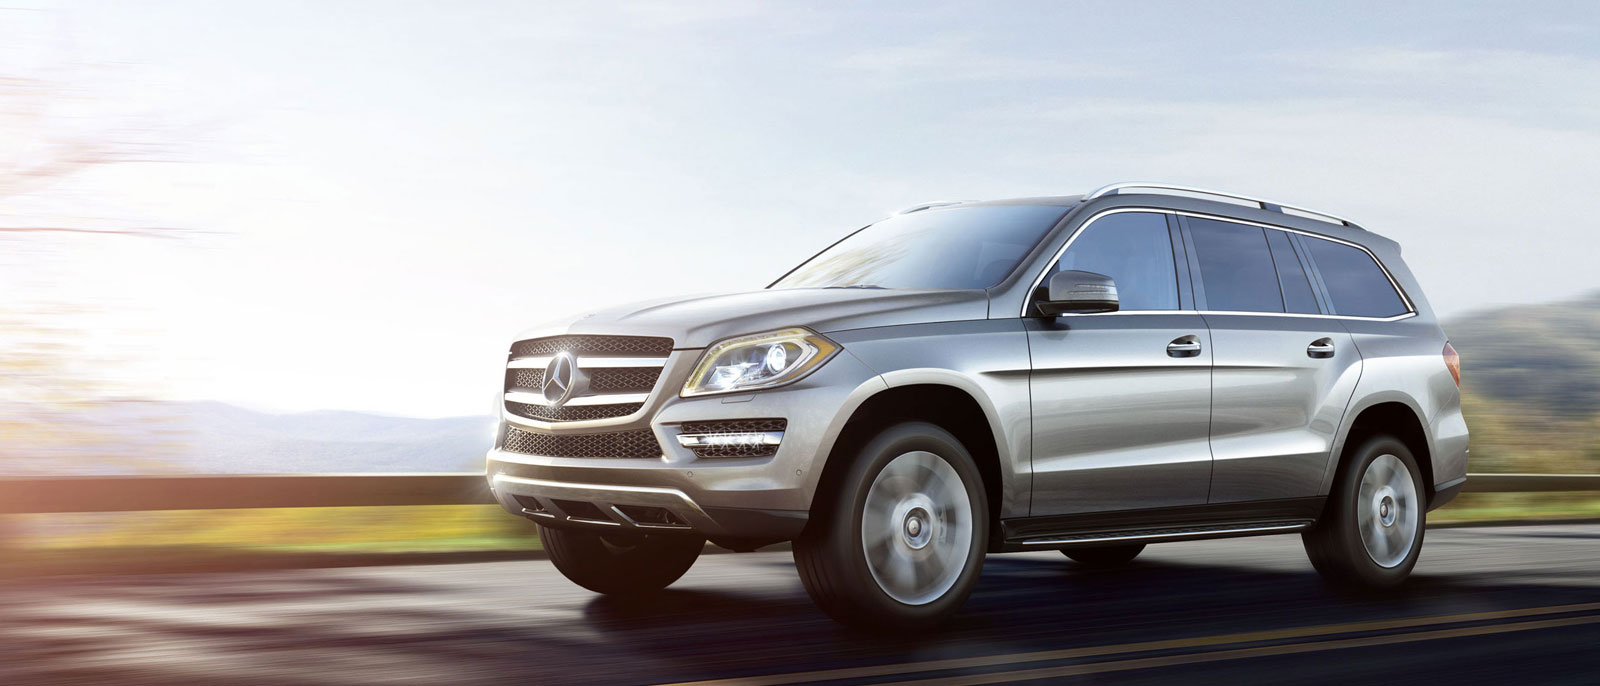 2015 mercedes benz gl suv rbm of alpharetta mercedes ben for Mercedes benz suv models